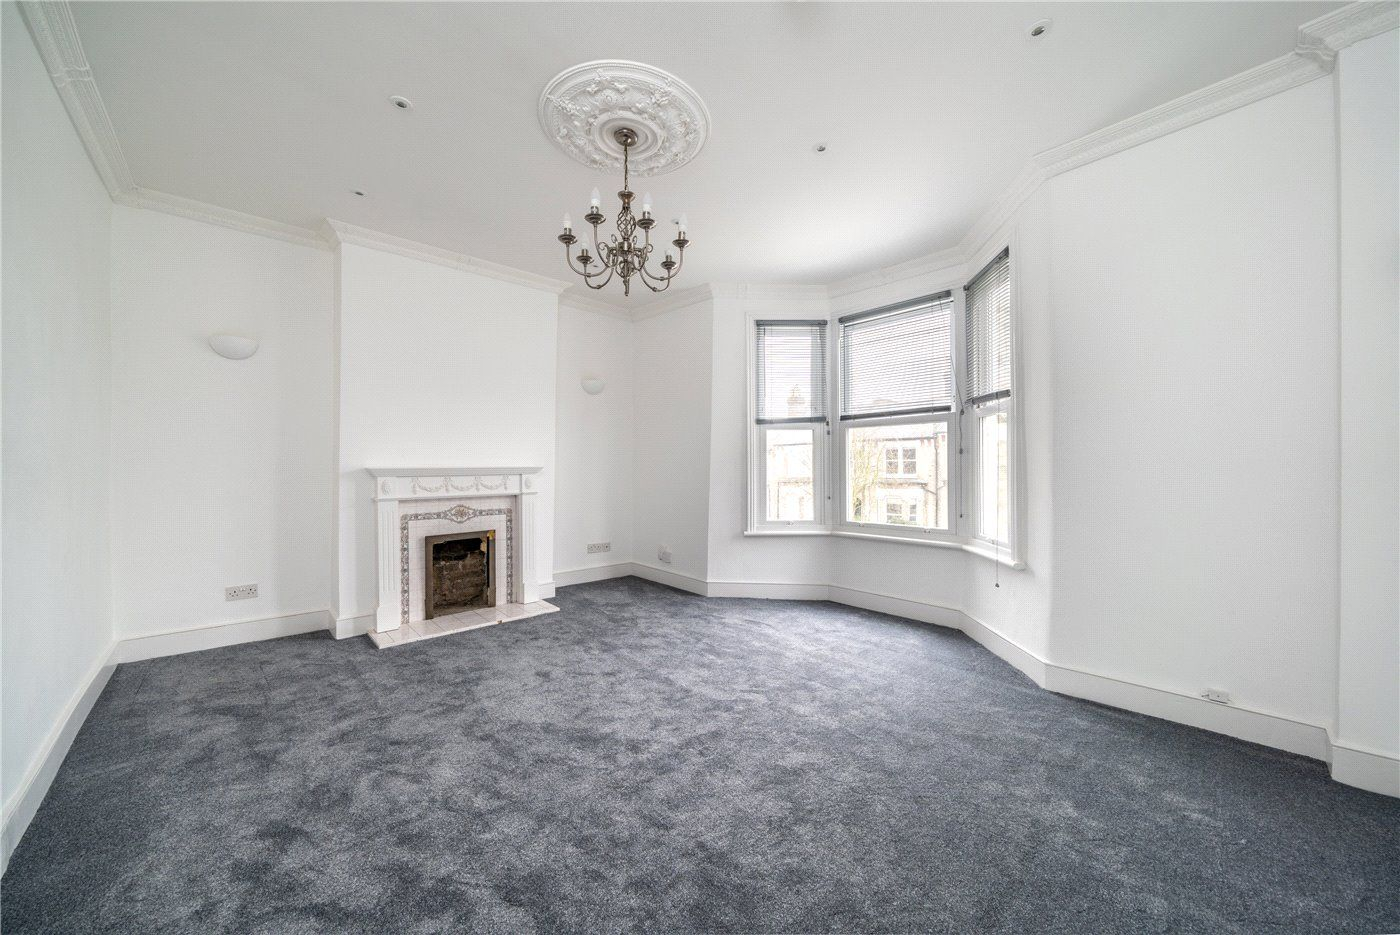 Property photo 1 of 9. Reception Room